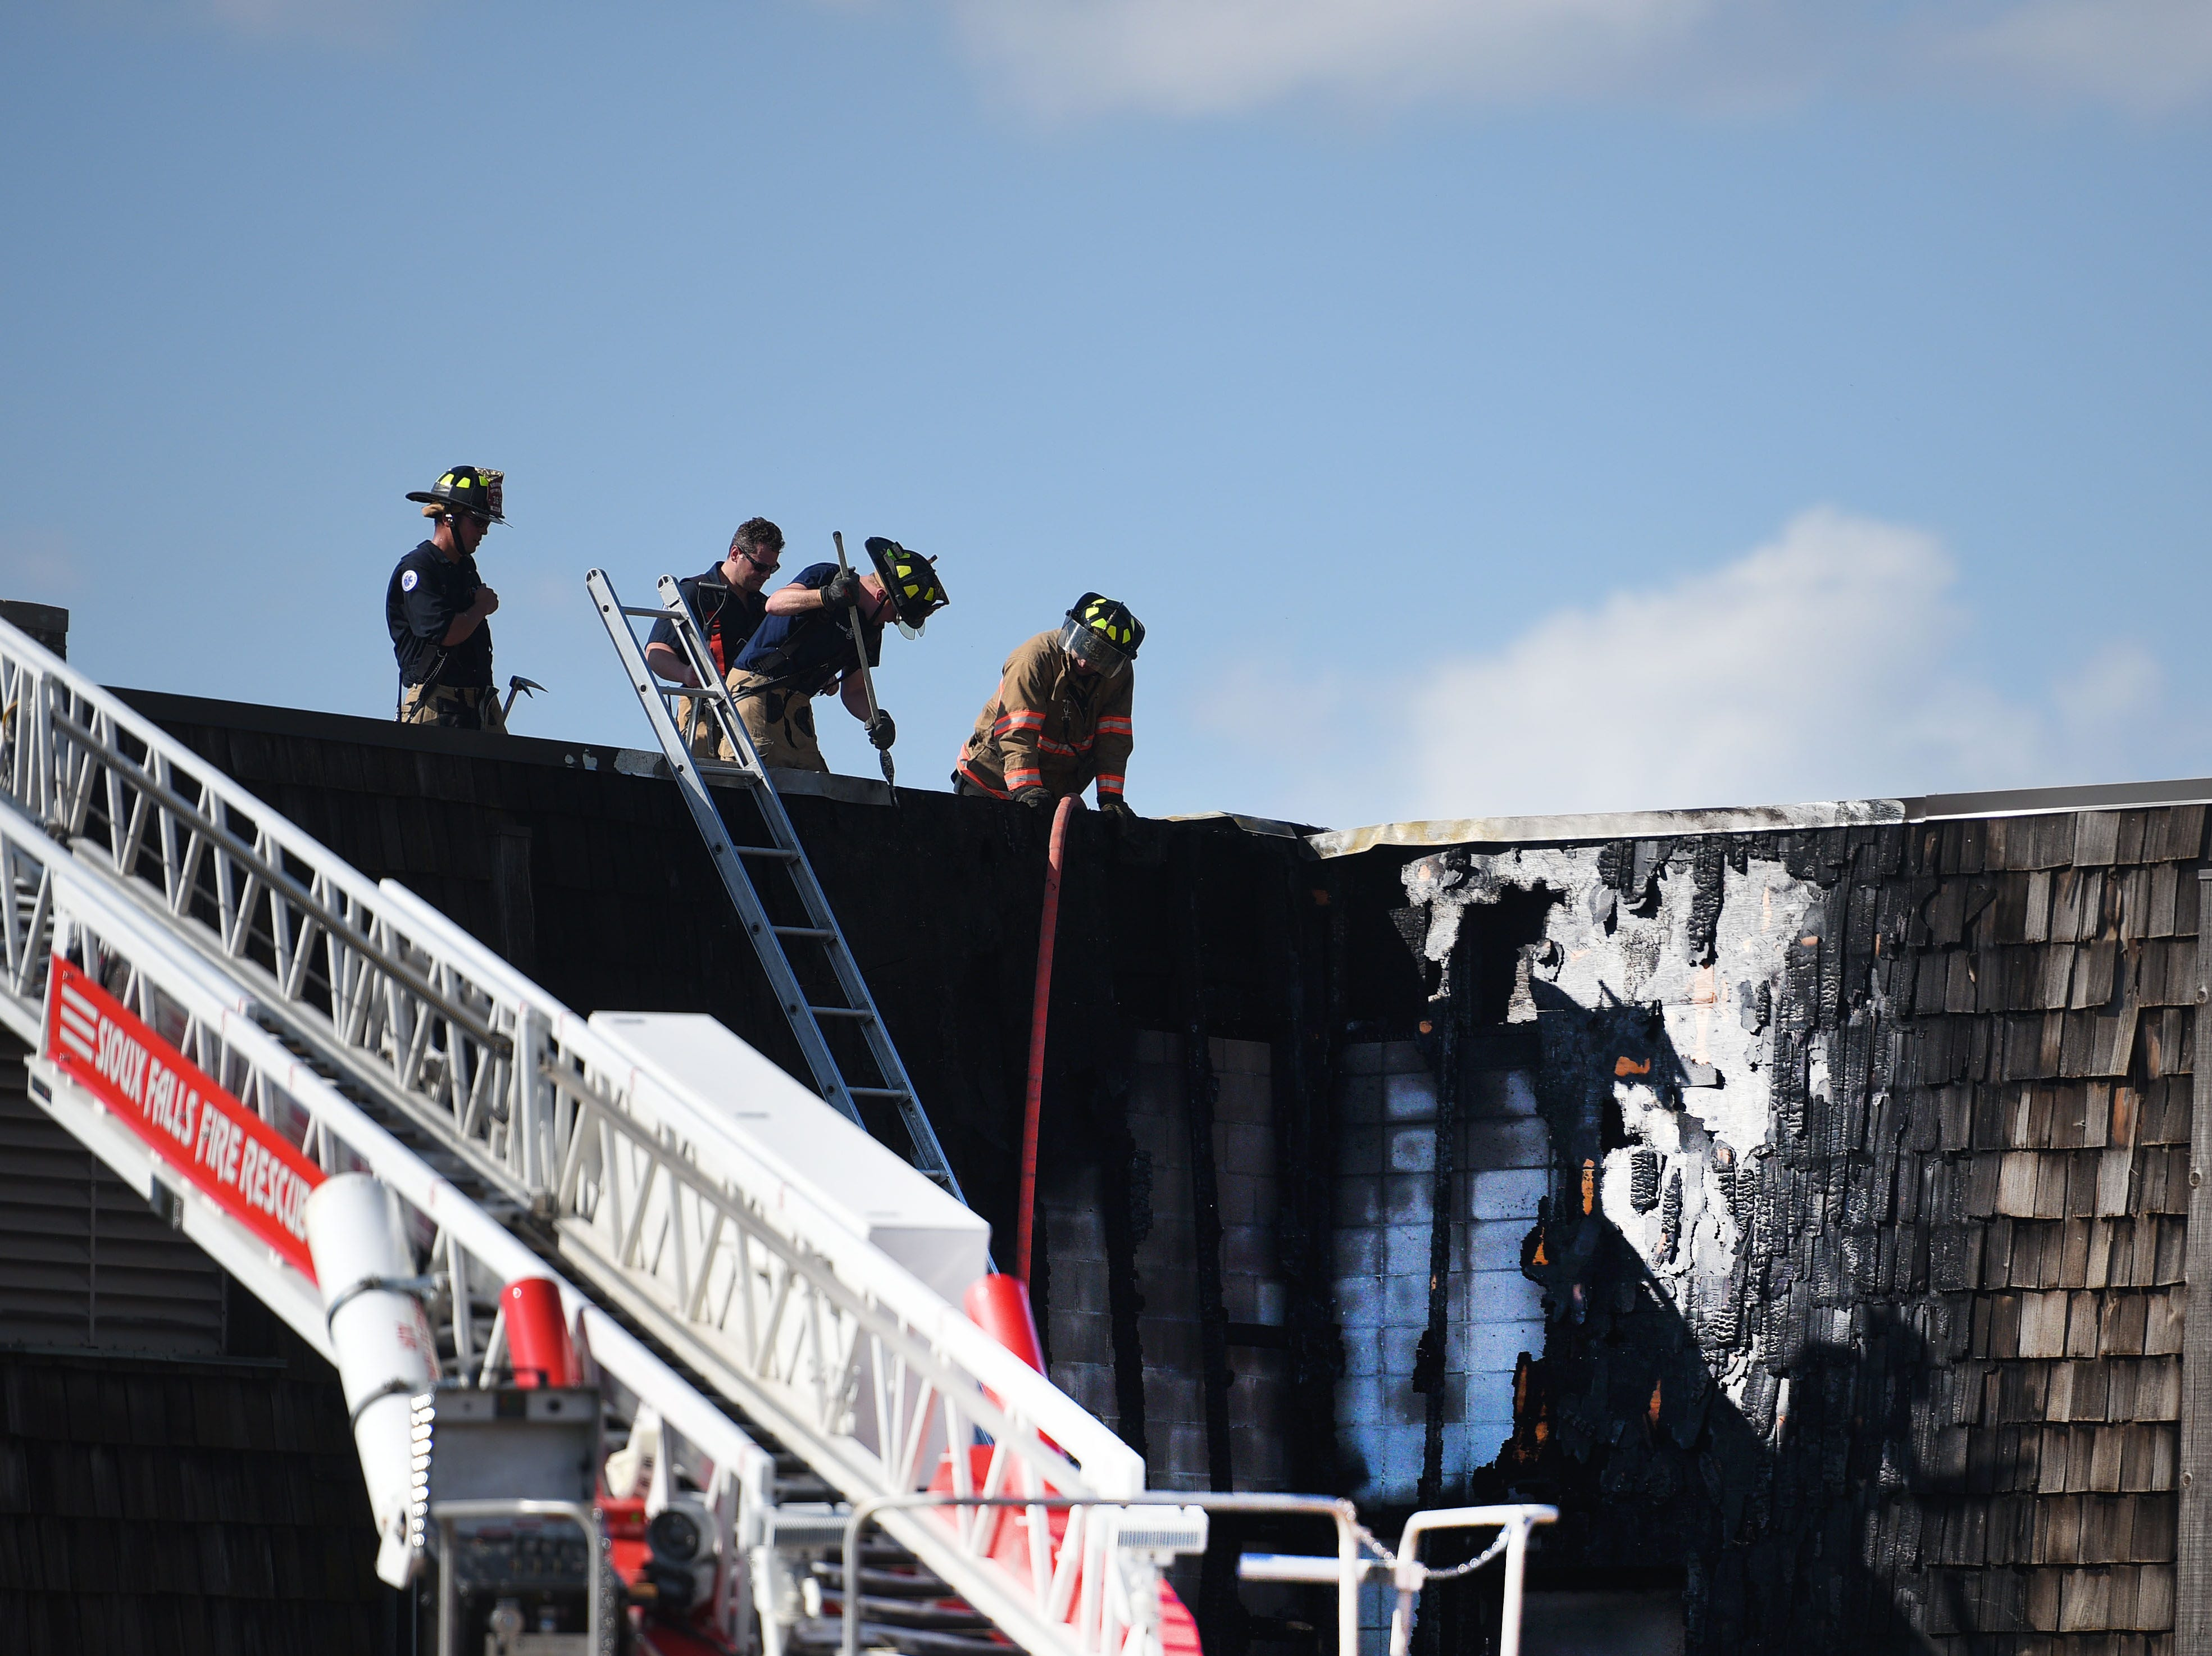 A fire is contained at the Minnehaha County Correction Center Sunday, Sept. 16, in Sioux Falls.